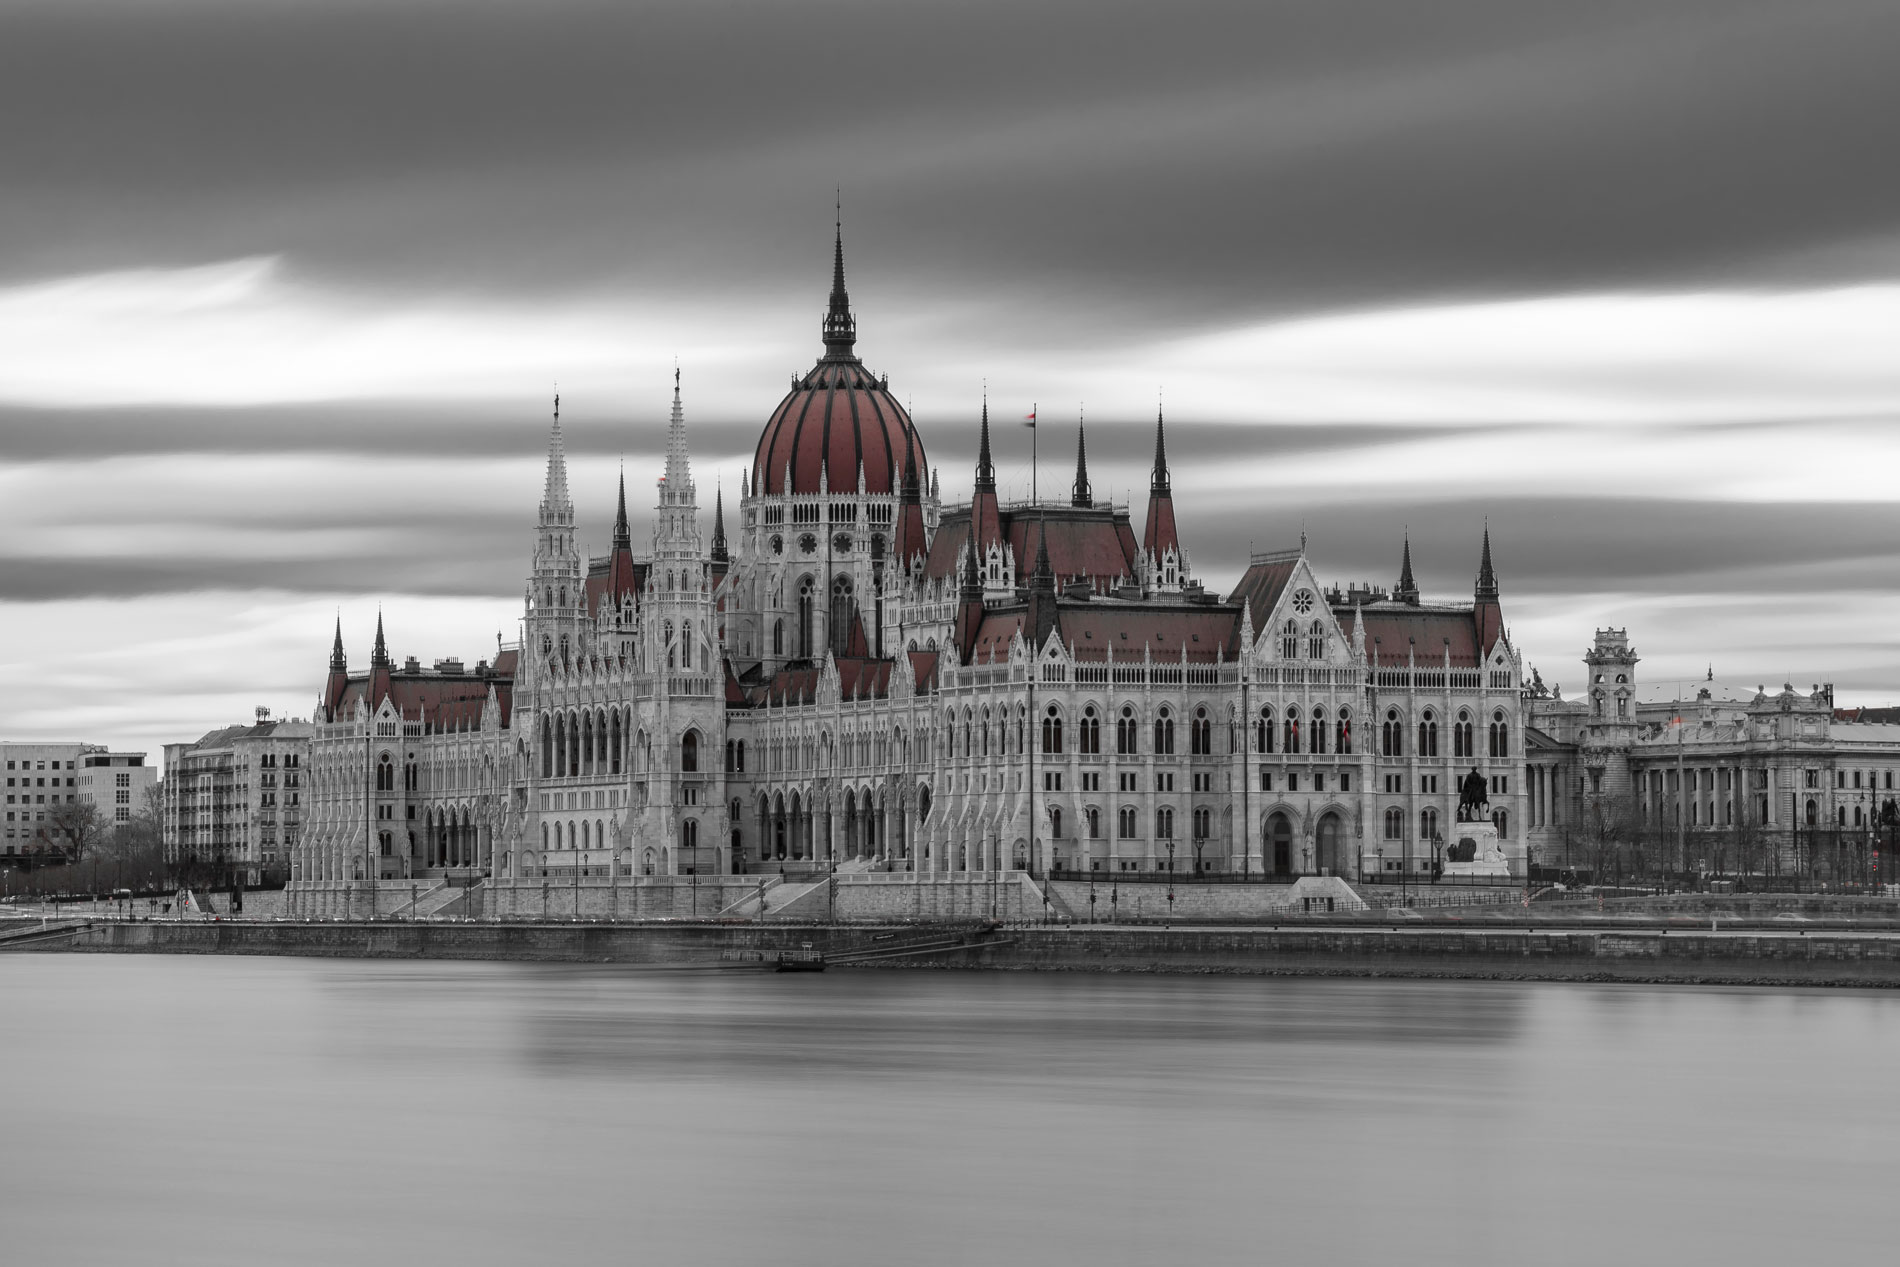 photography_atthary_budapest_monumental_39